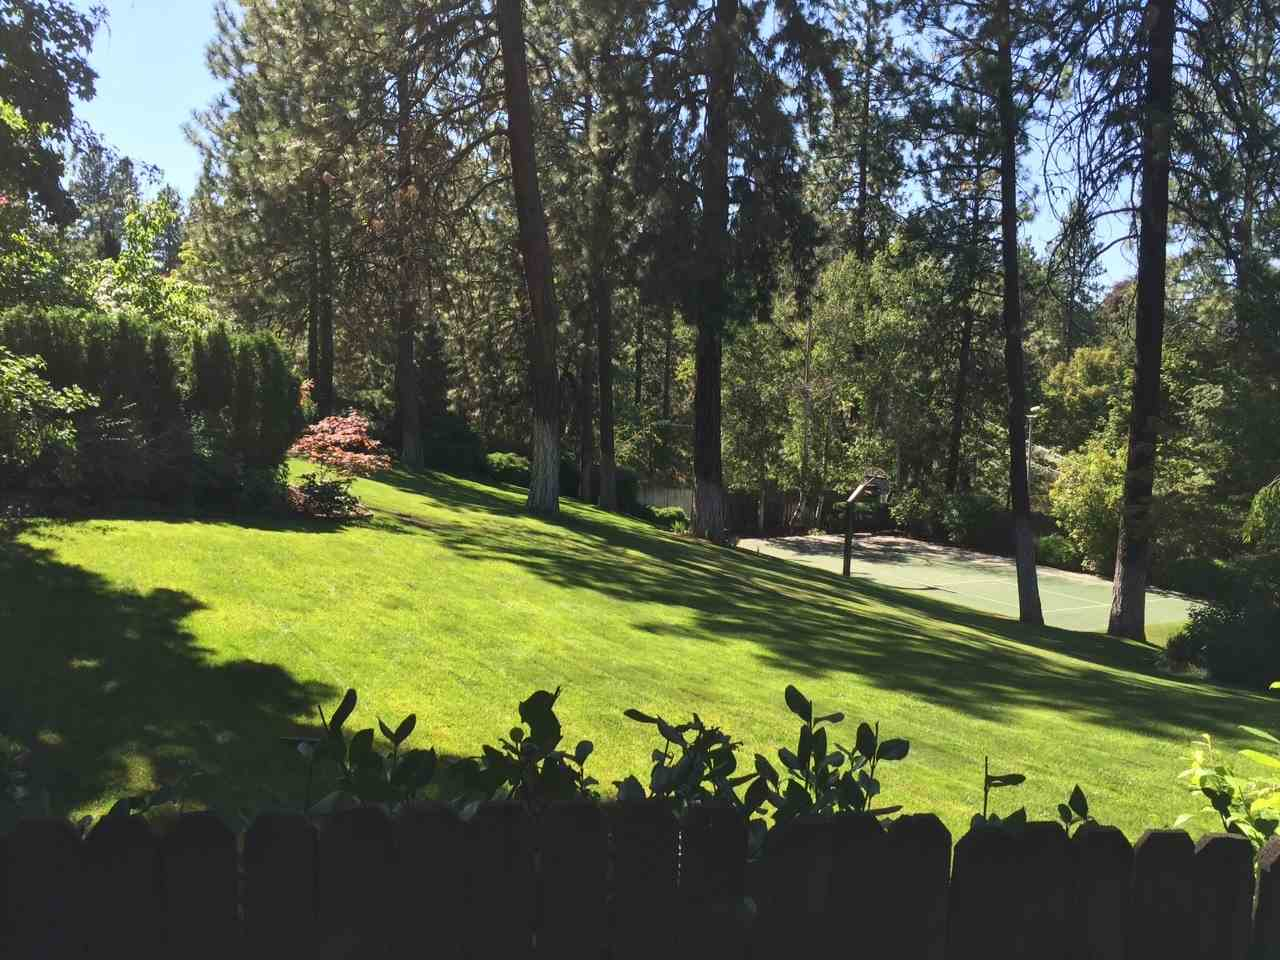 1606 S Crest Hill Dr , Spokane, WA - USA (photo 4)